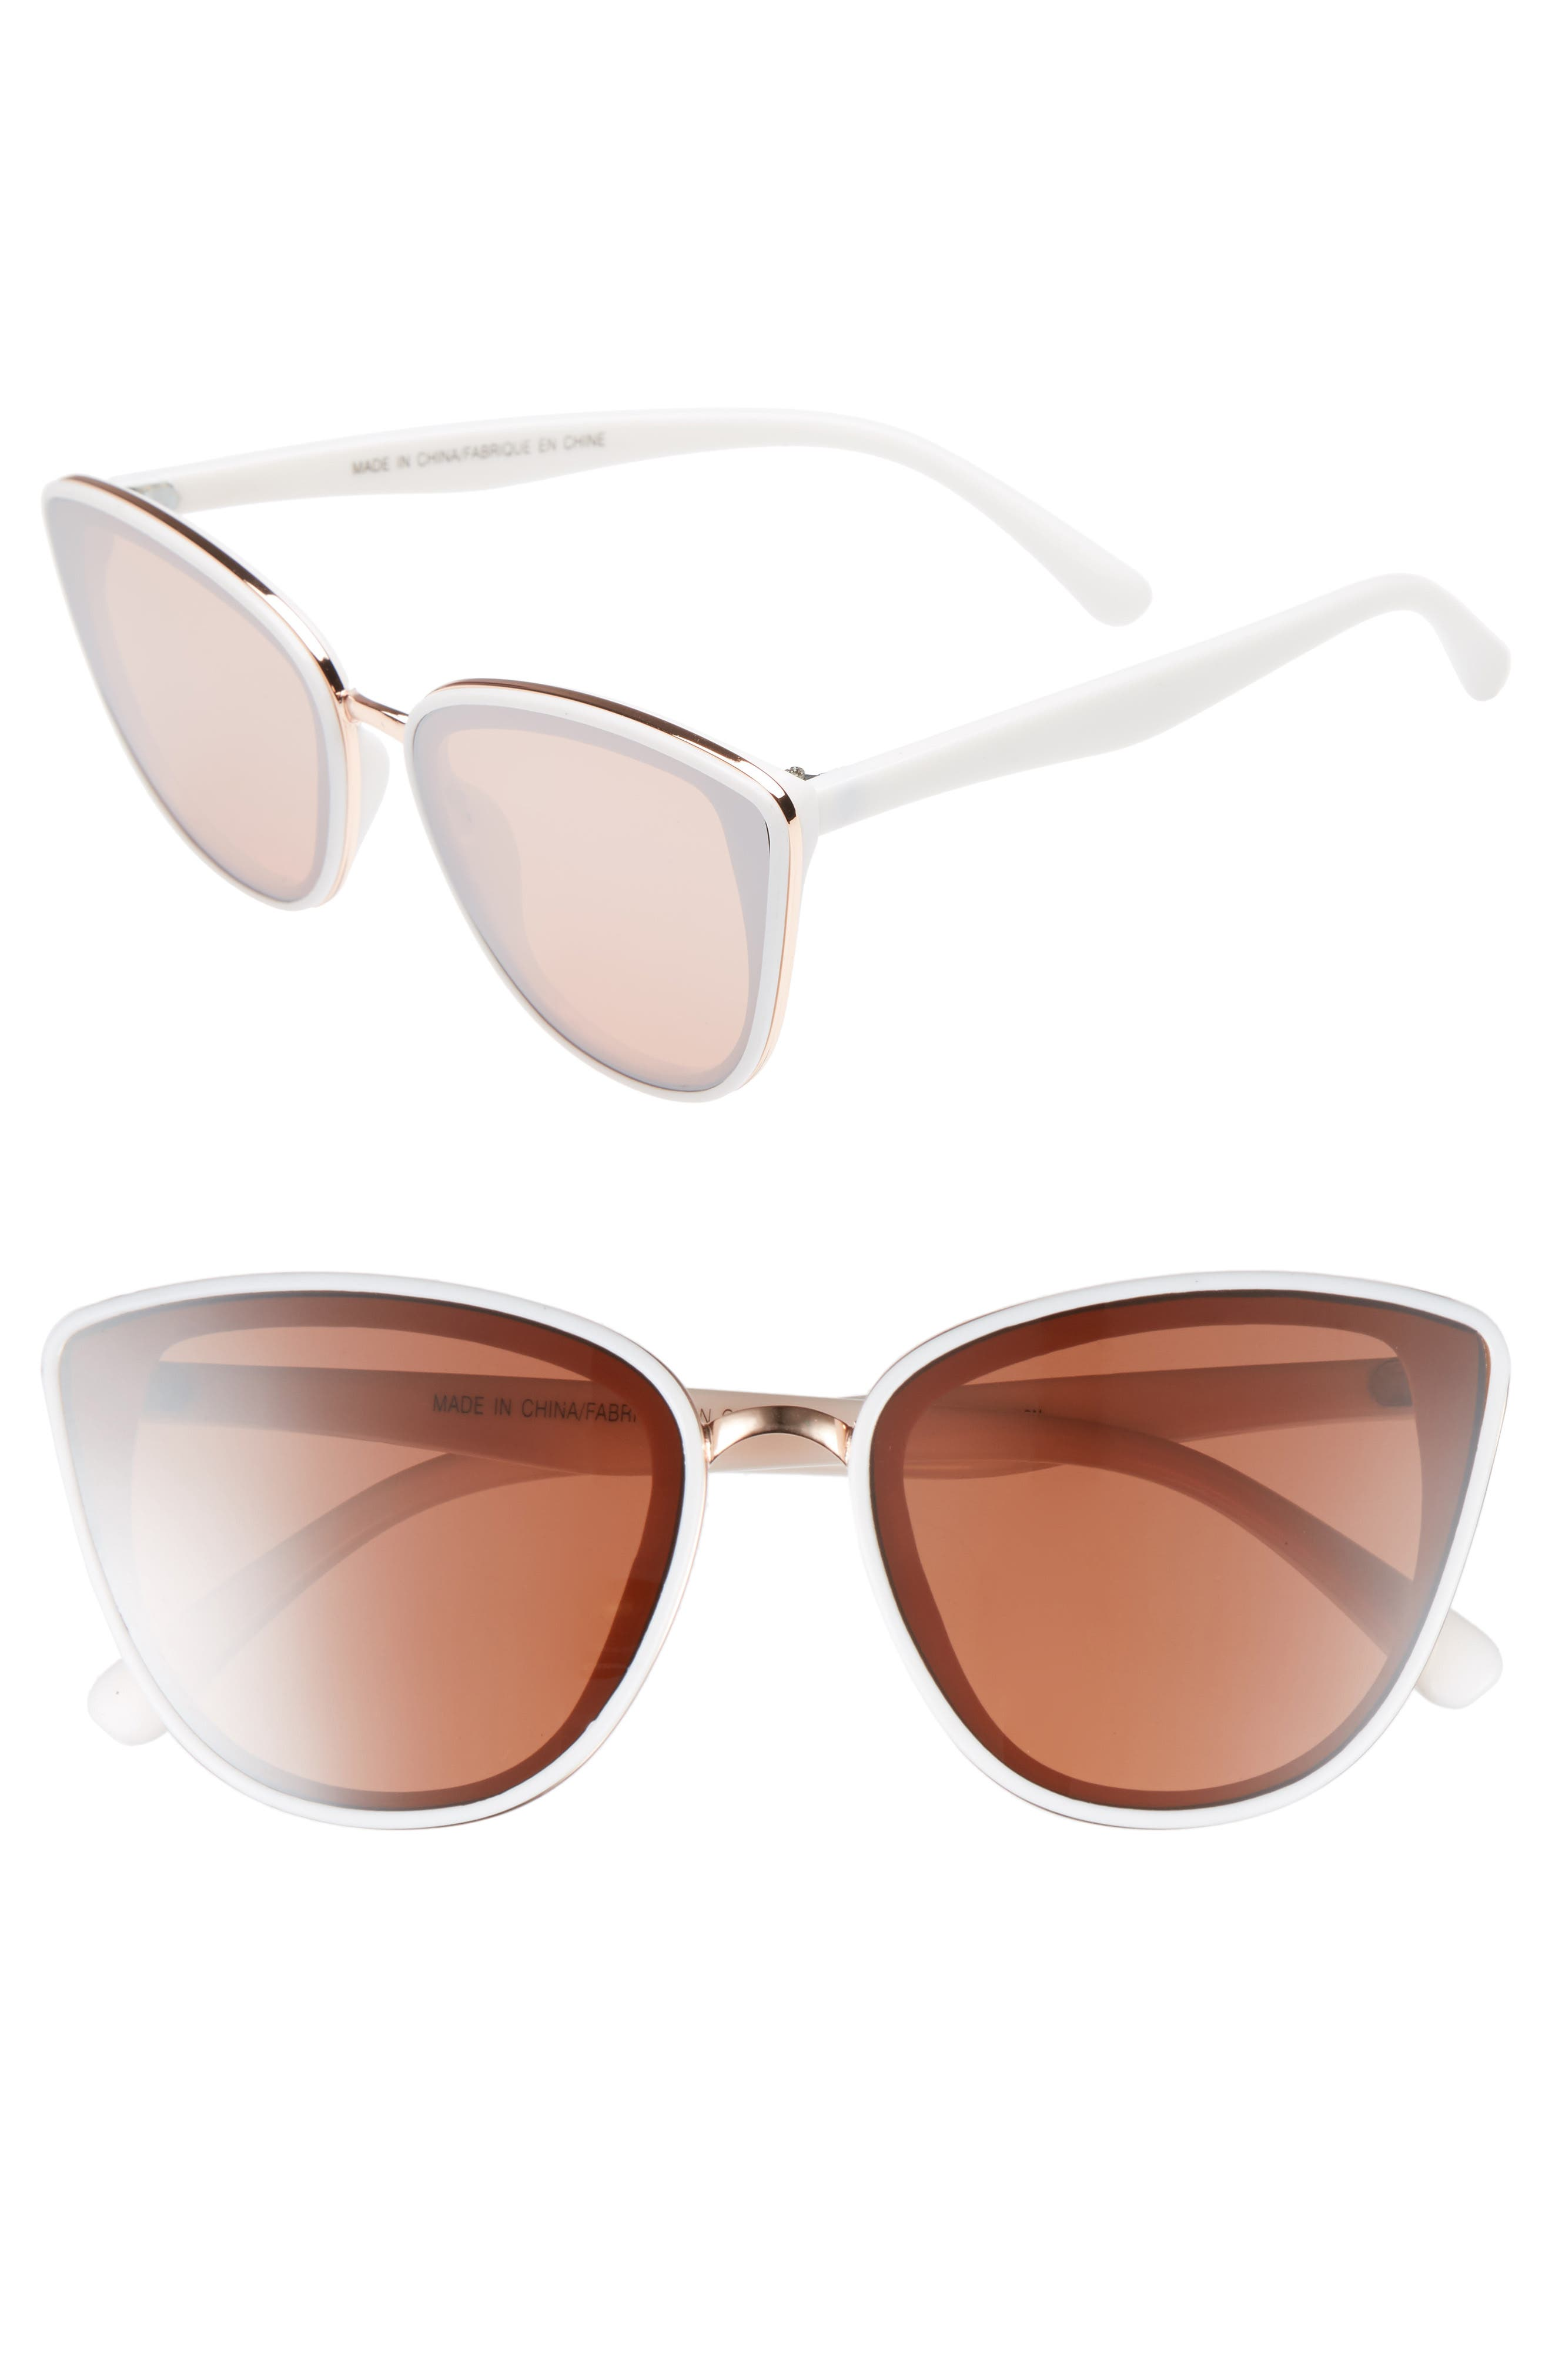 59mm Perfect Cat Eye Sunglasses,                             Main thumbnail 1, color,                             WHITE/ ROSE GOLD